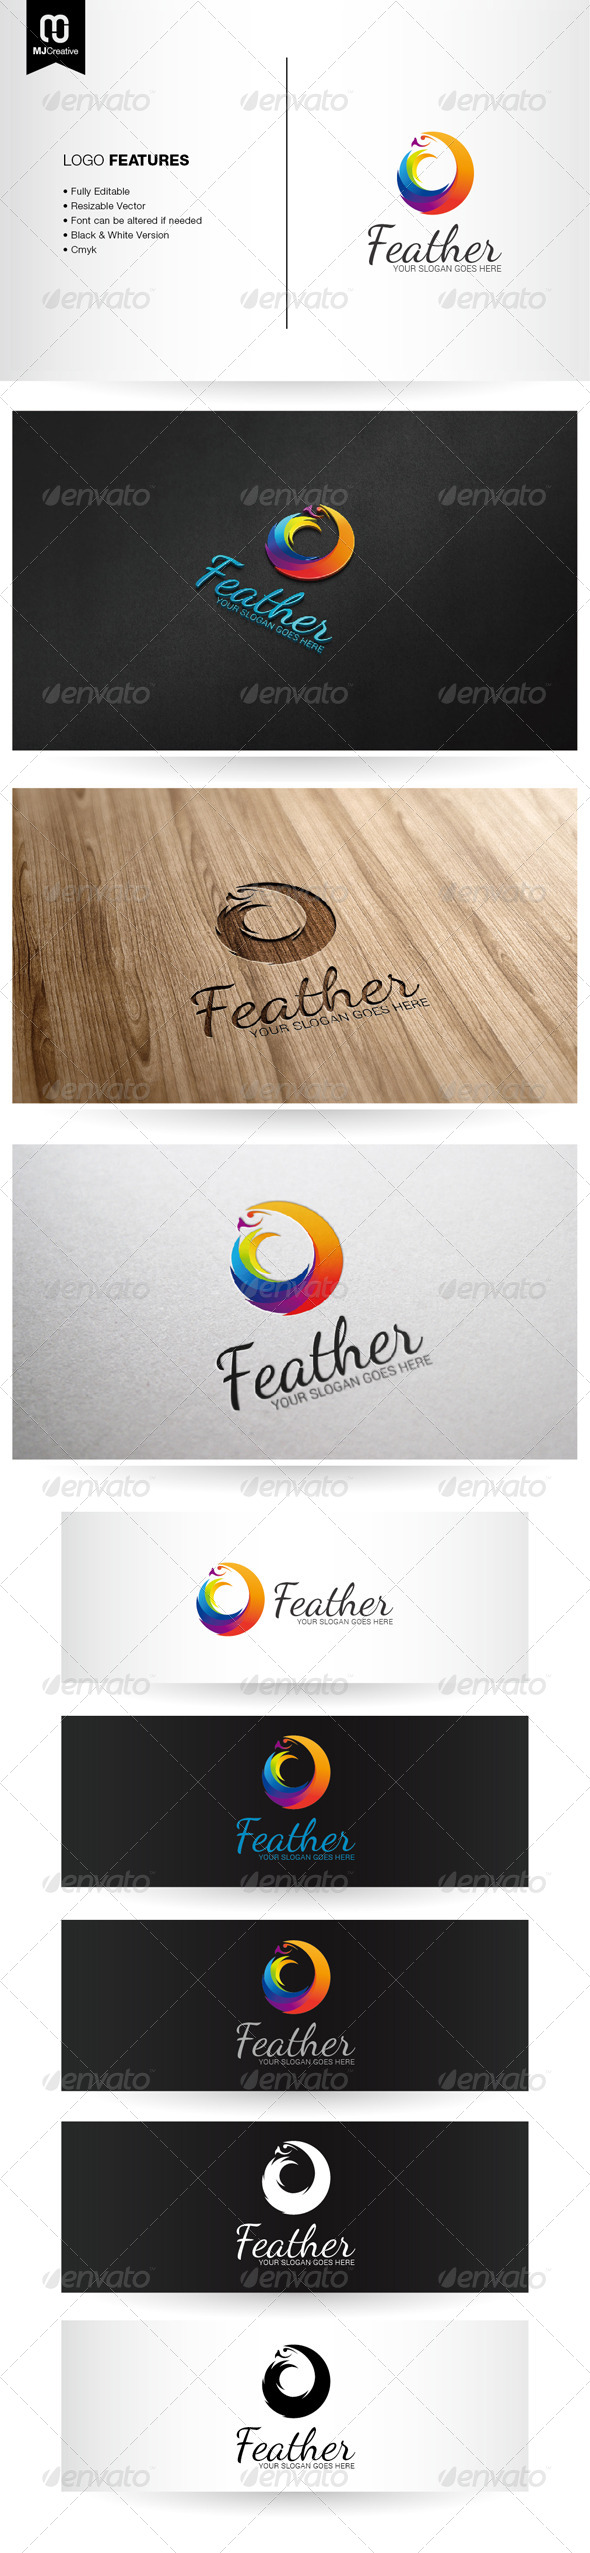 GraphicRiver Abstract Colorful Bird Logo 6704603